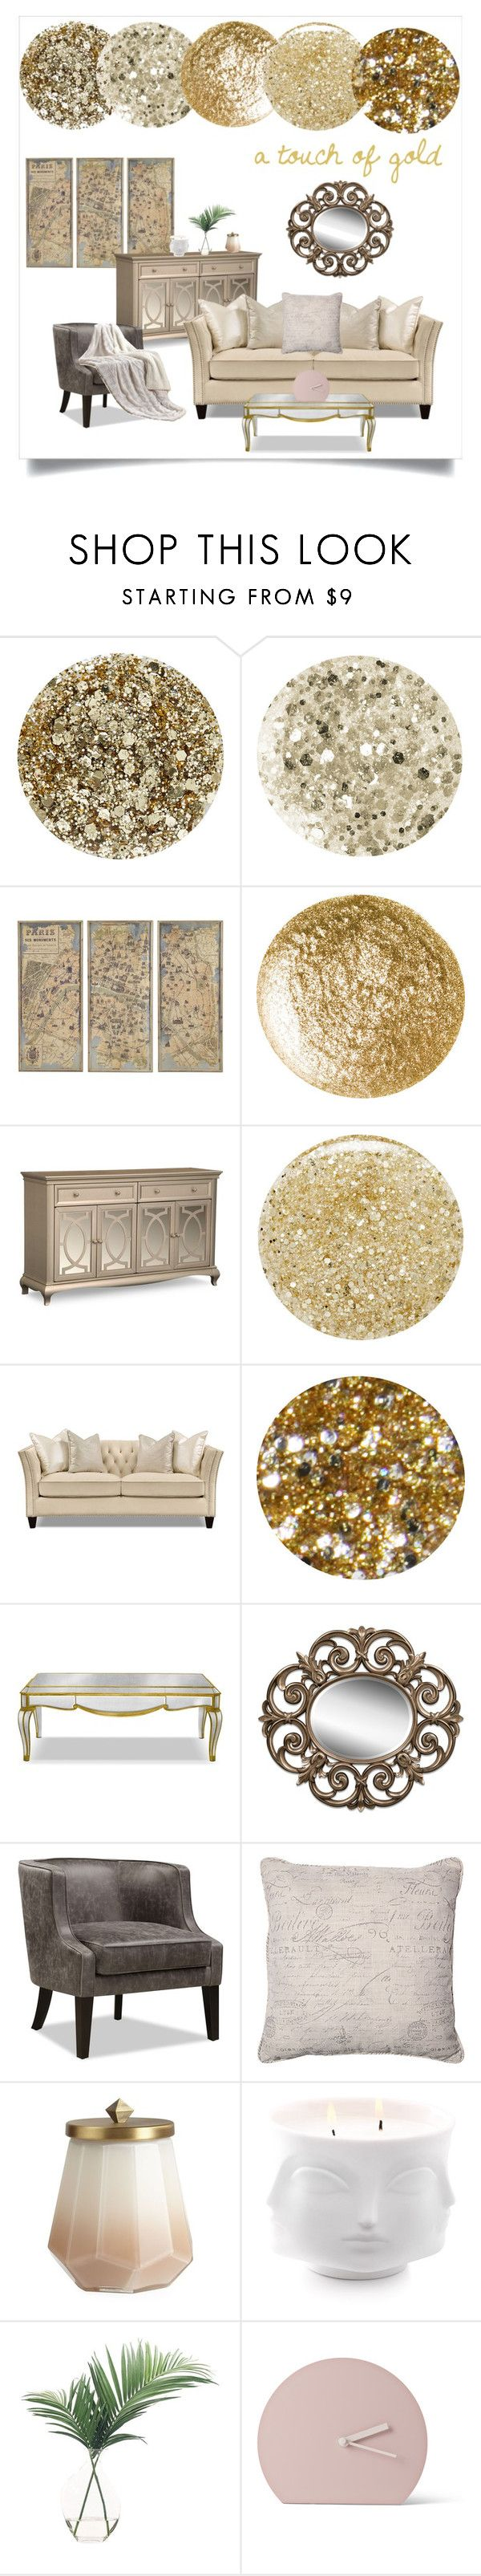 70 best furniture images on pinterest end tables living spaces